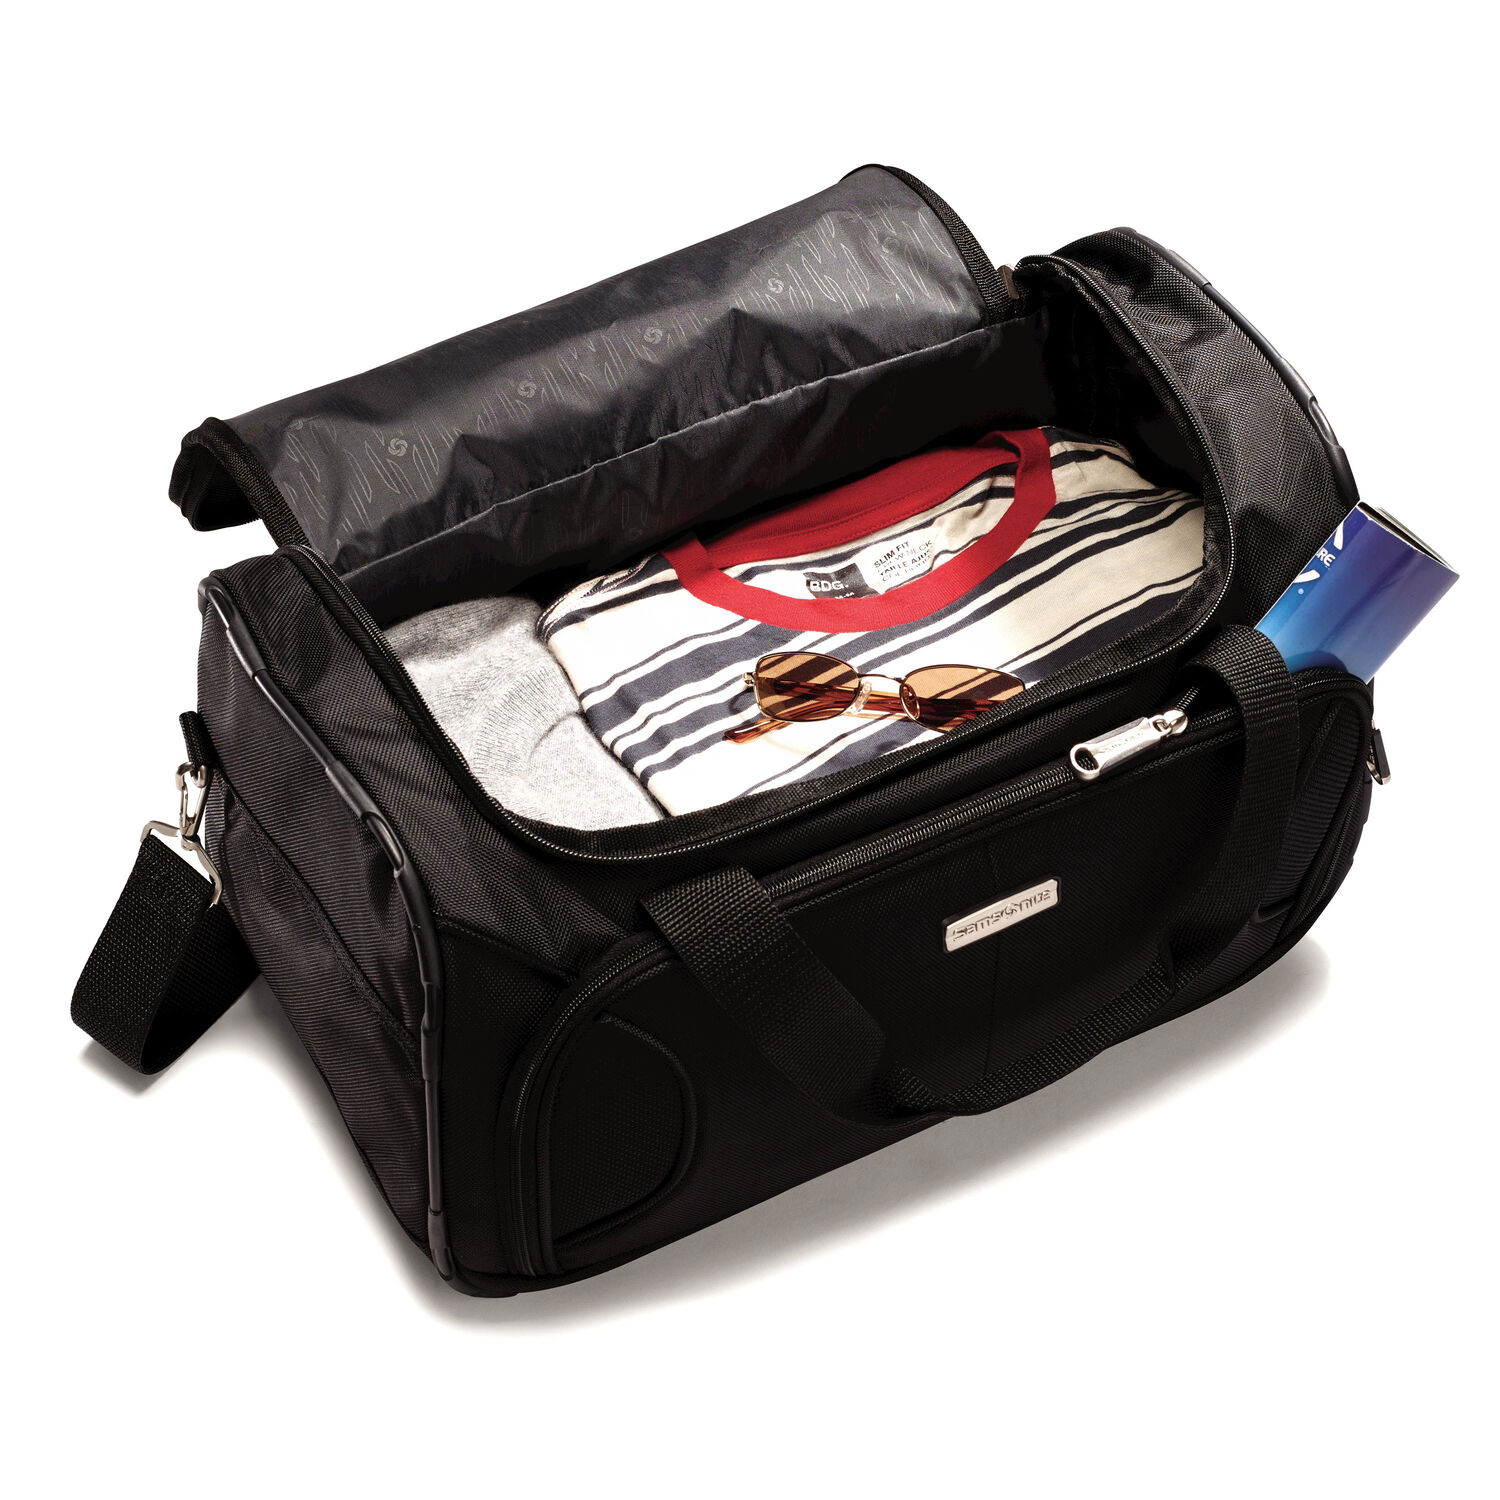 Samsonite Aspire Xlite Boarding Bag